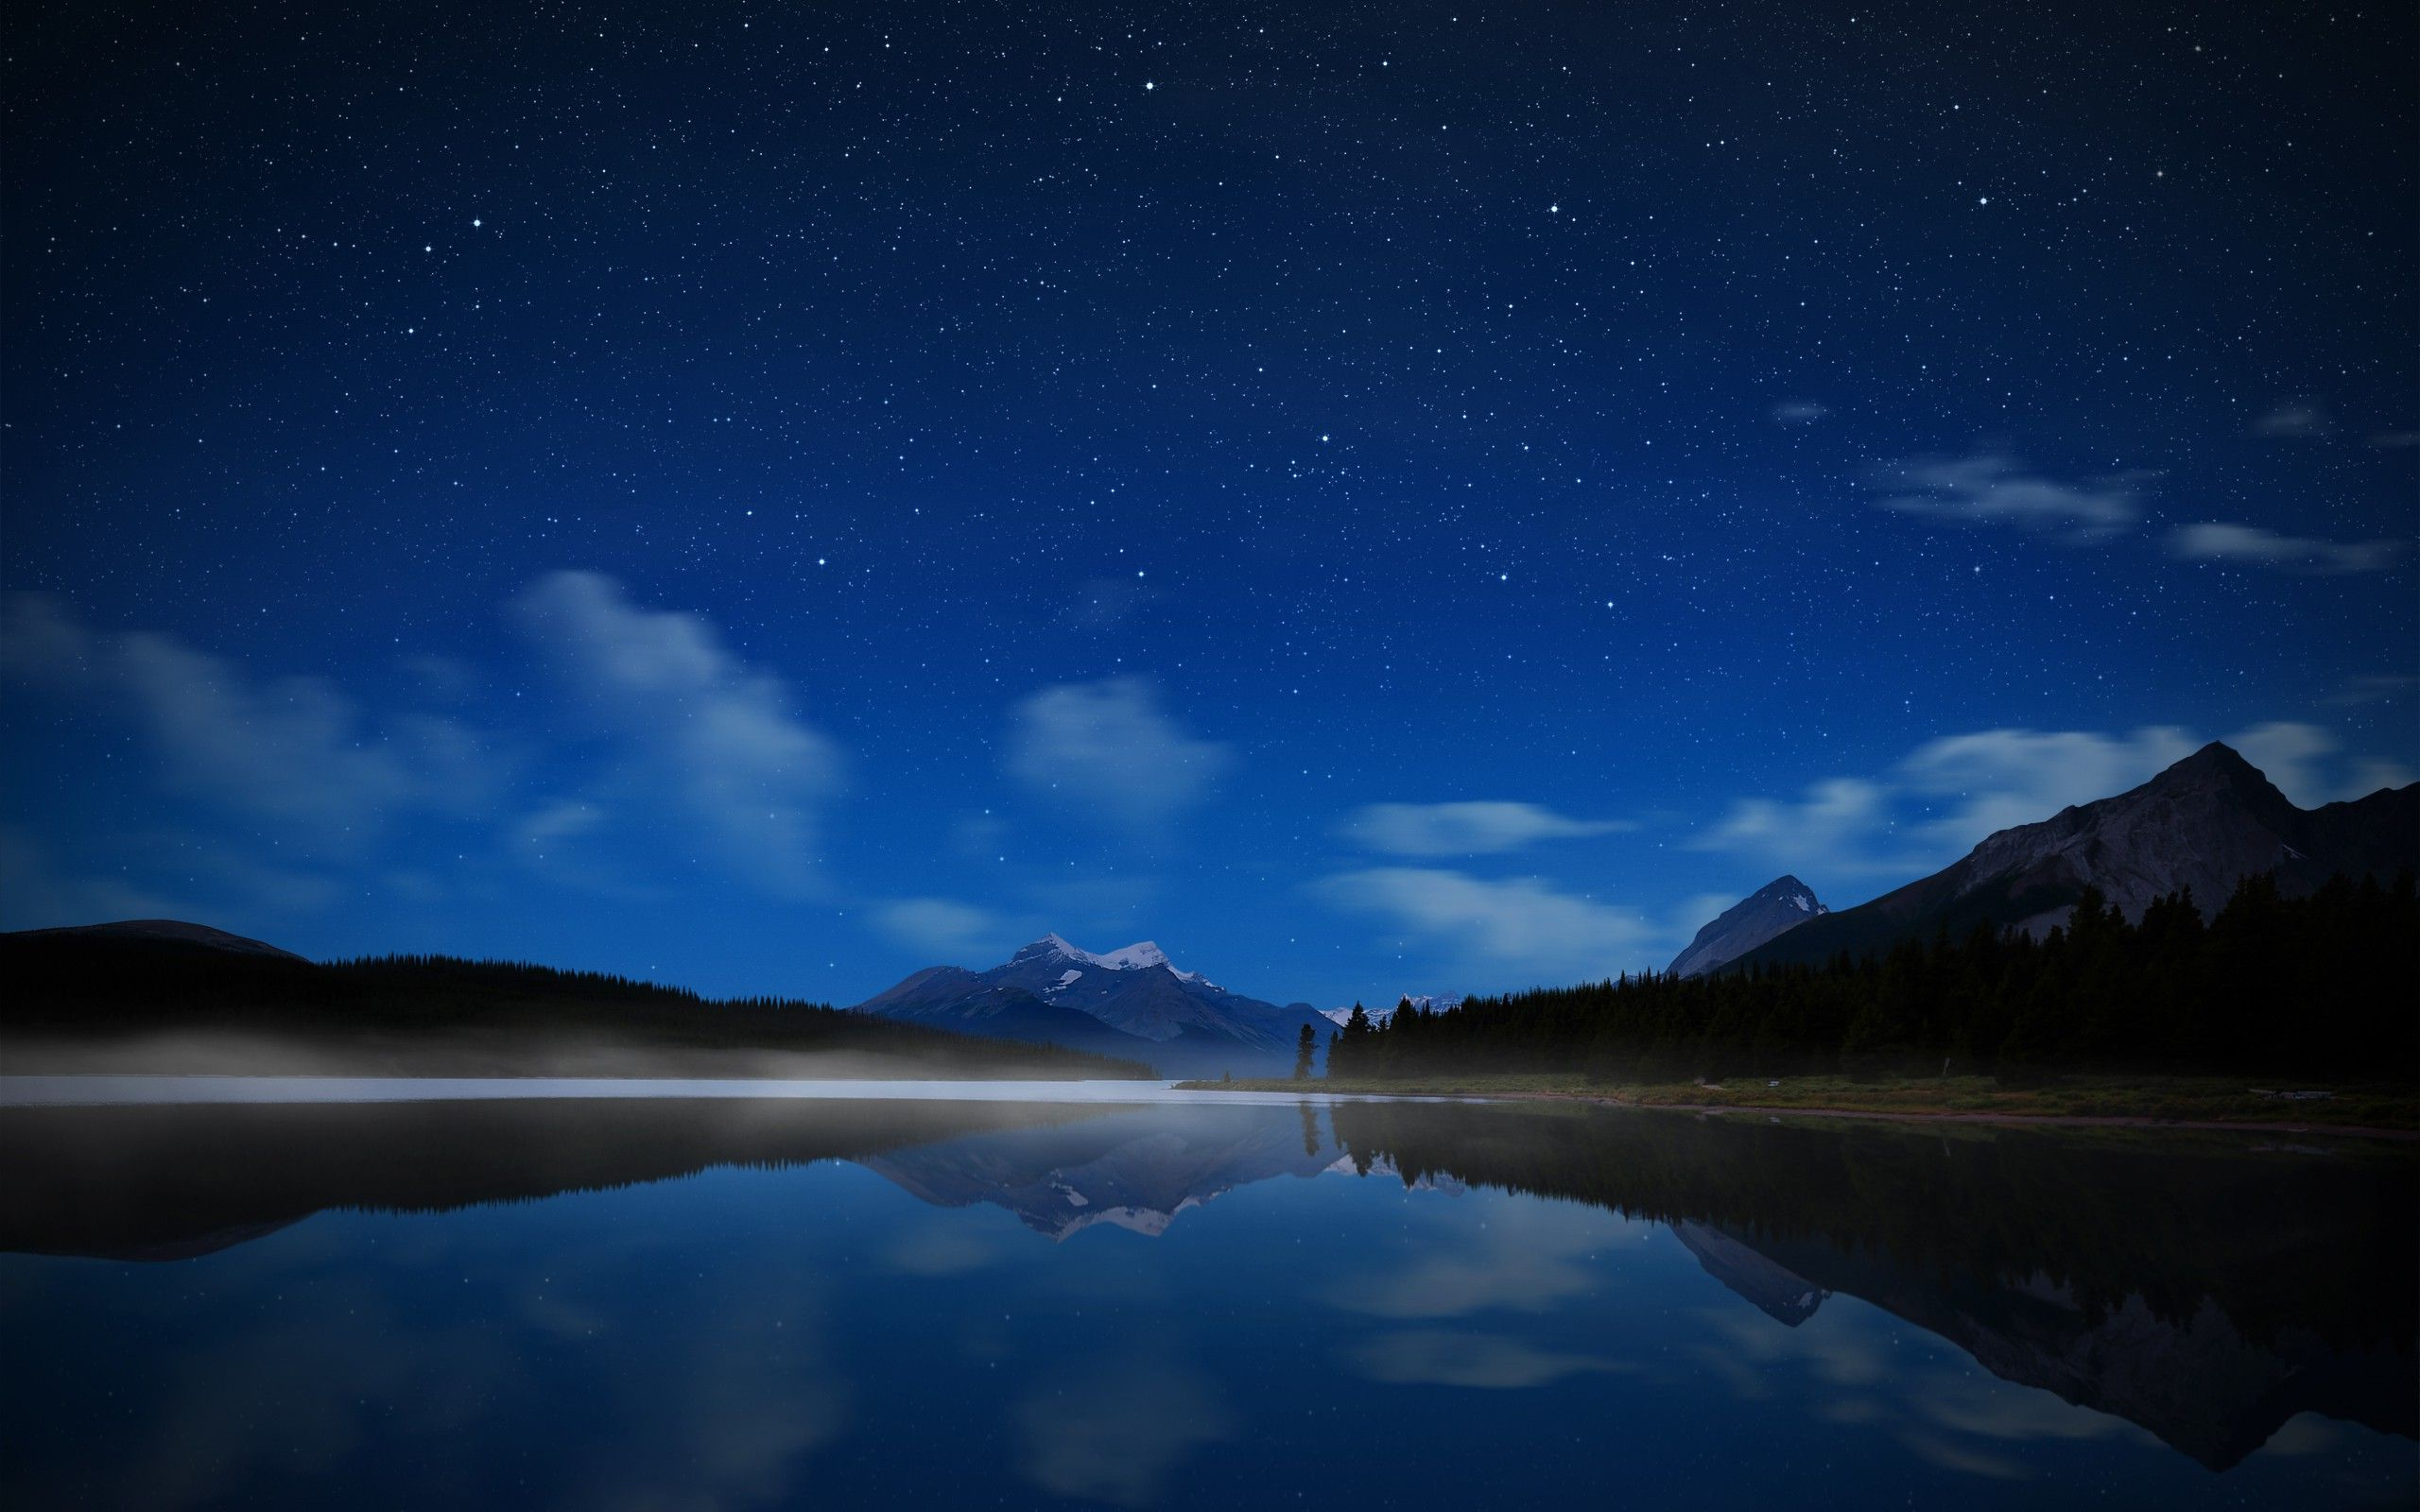 Download wallpaper 1920x1080 starry sky, night, trees